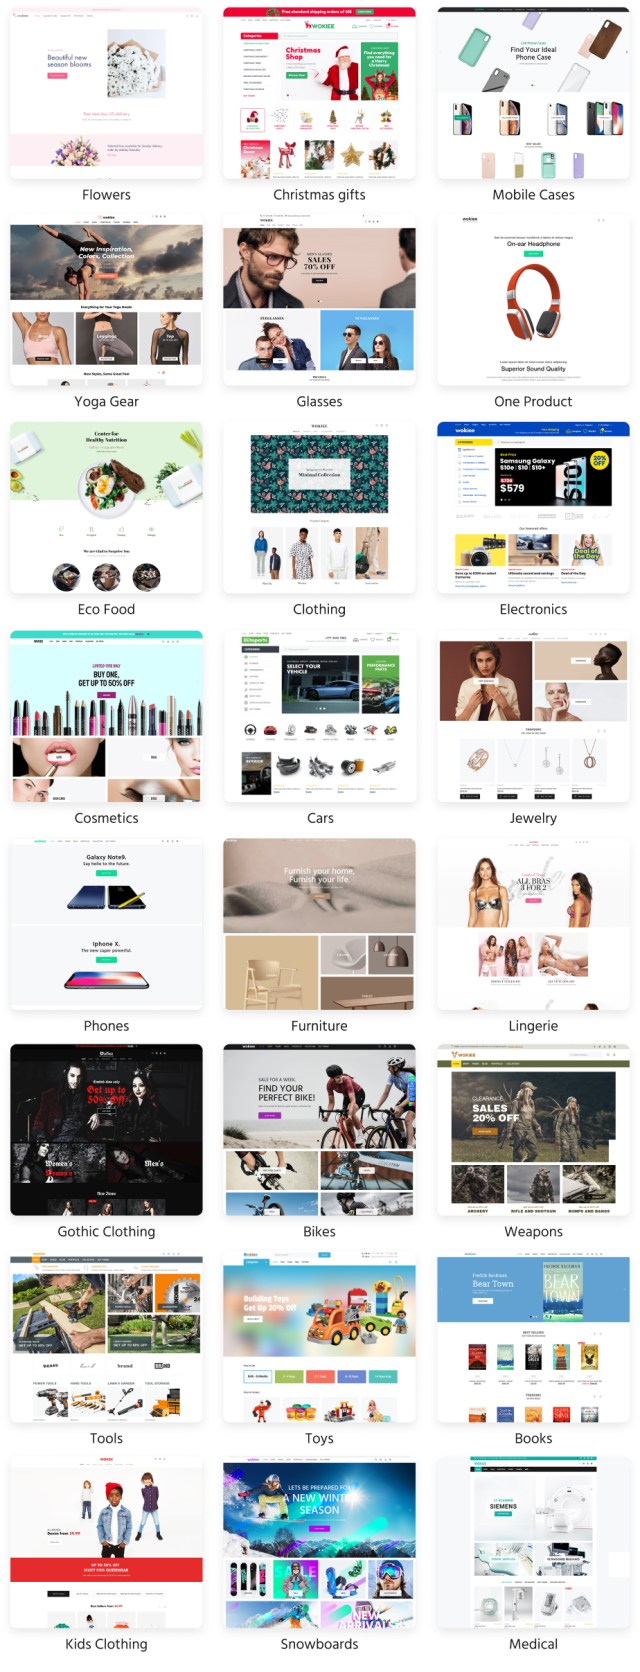 Wokiee - Multipurpose Shopify Theme - 23